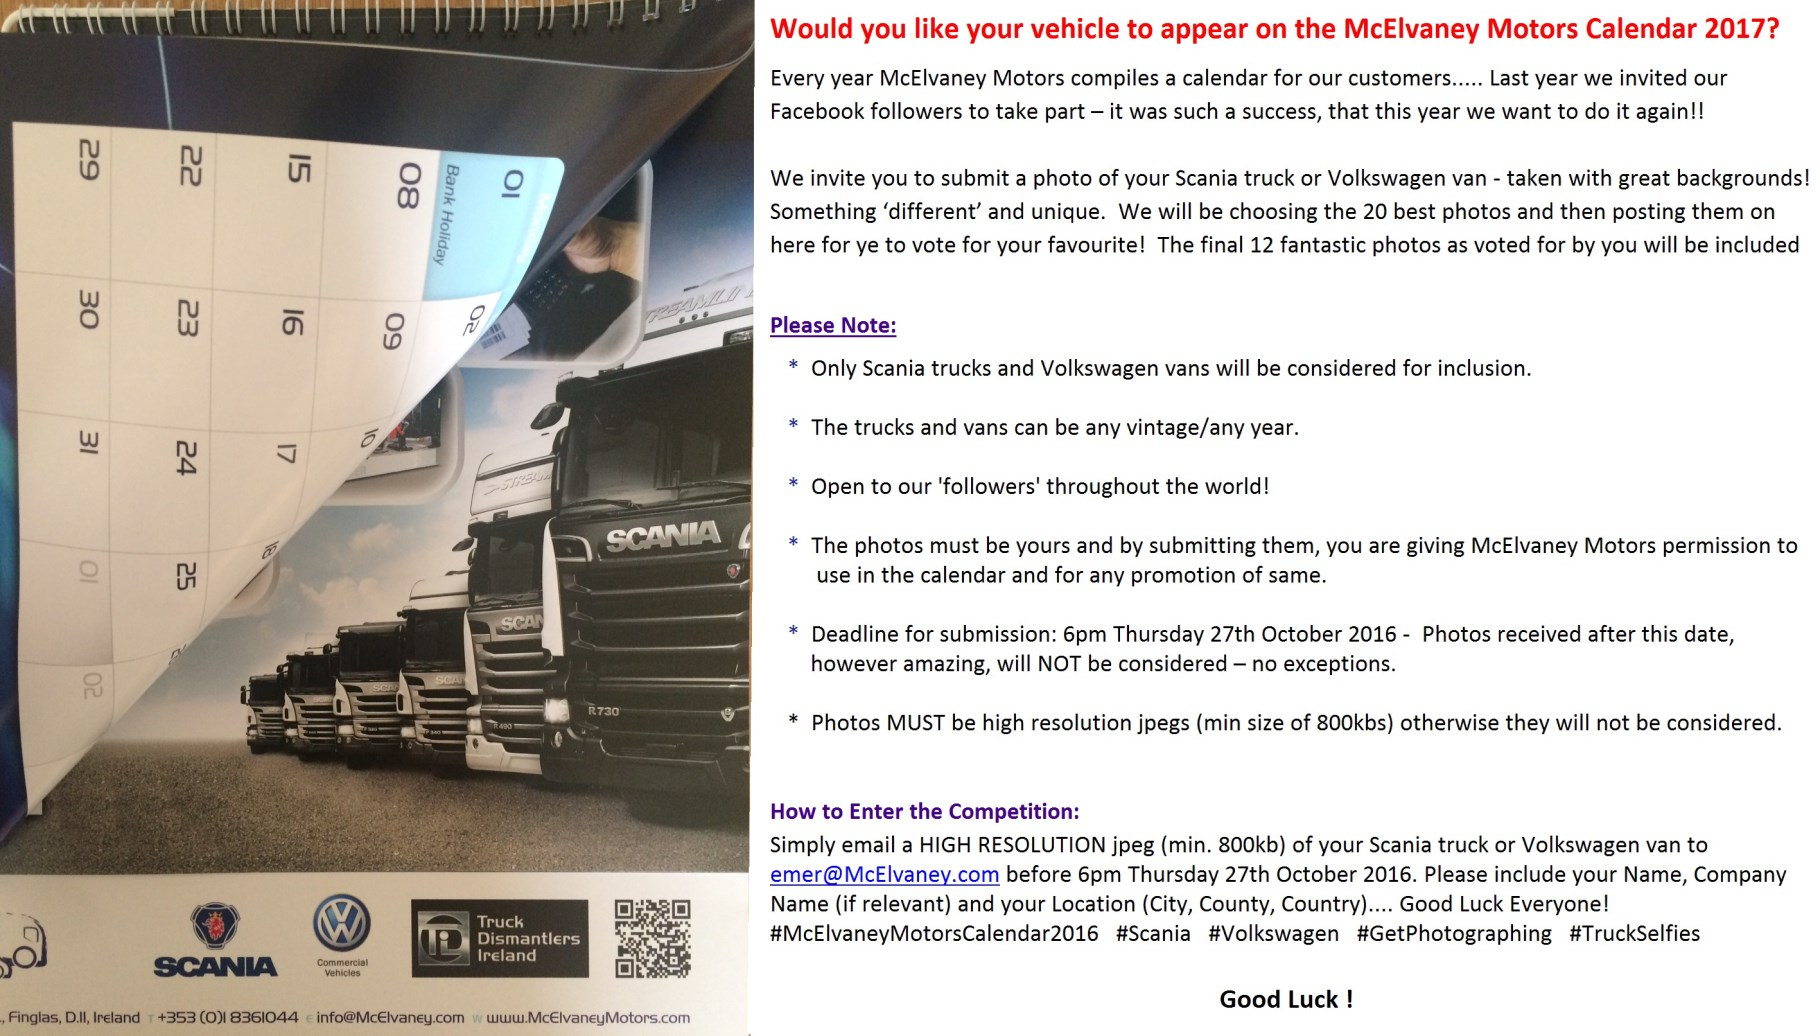 Would you like your Scania Truck or Volkswagen Van to appear on the McElvaney Motors Calendar 2017?